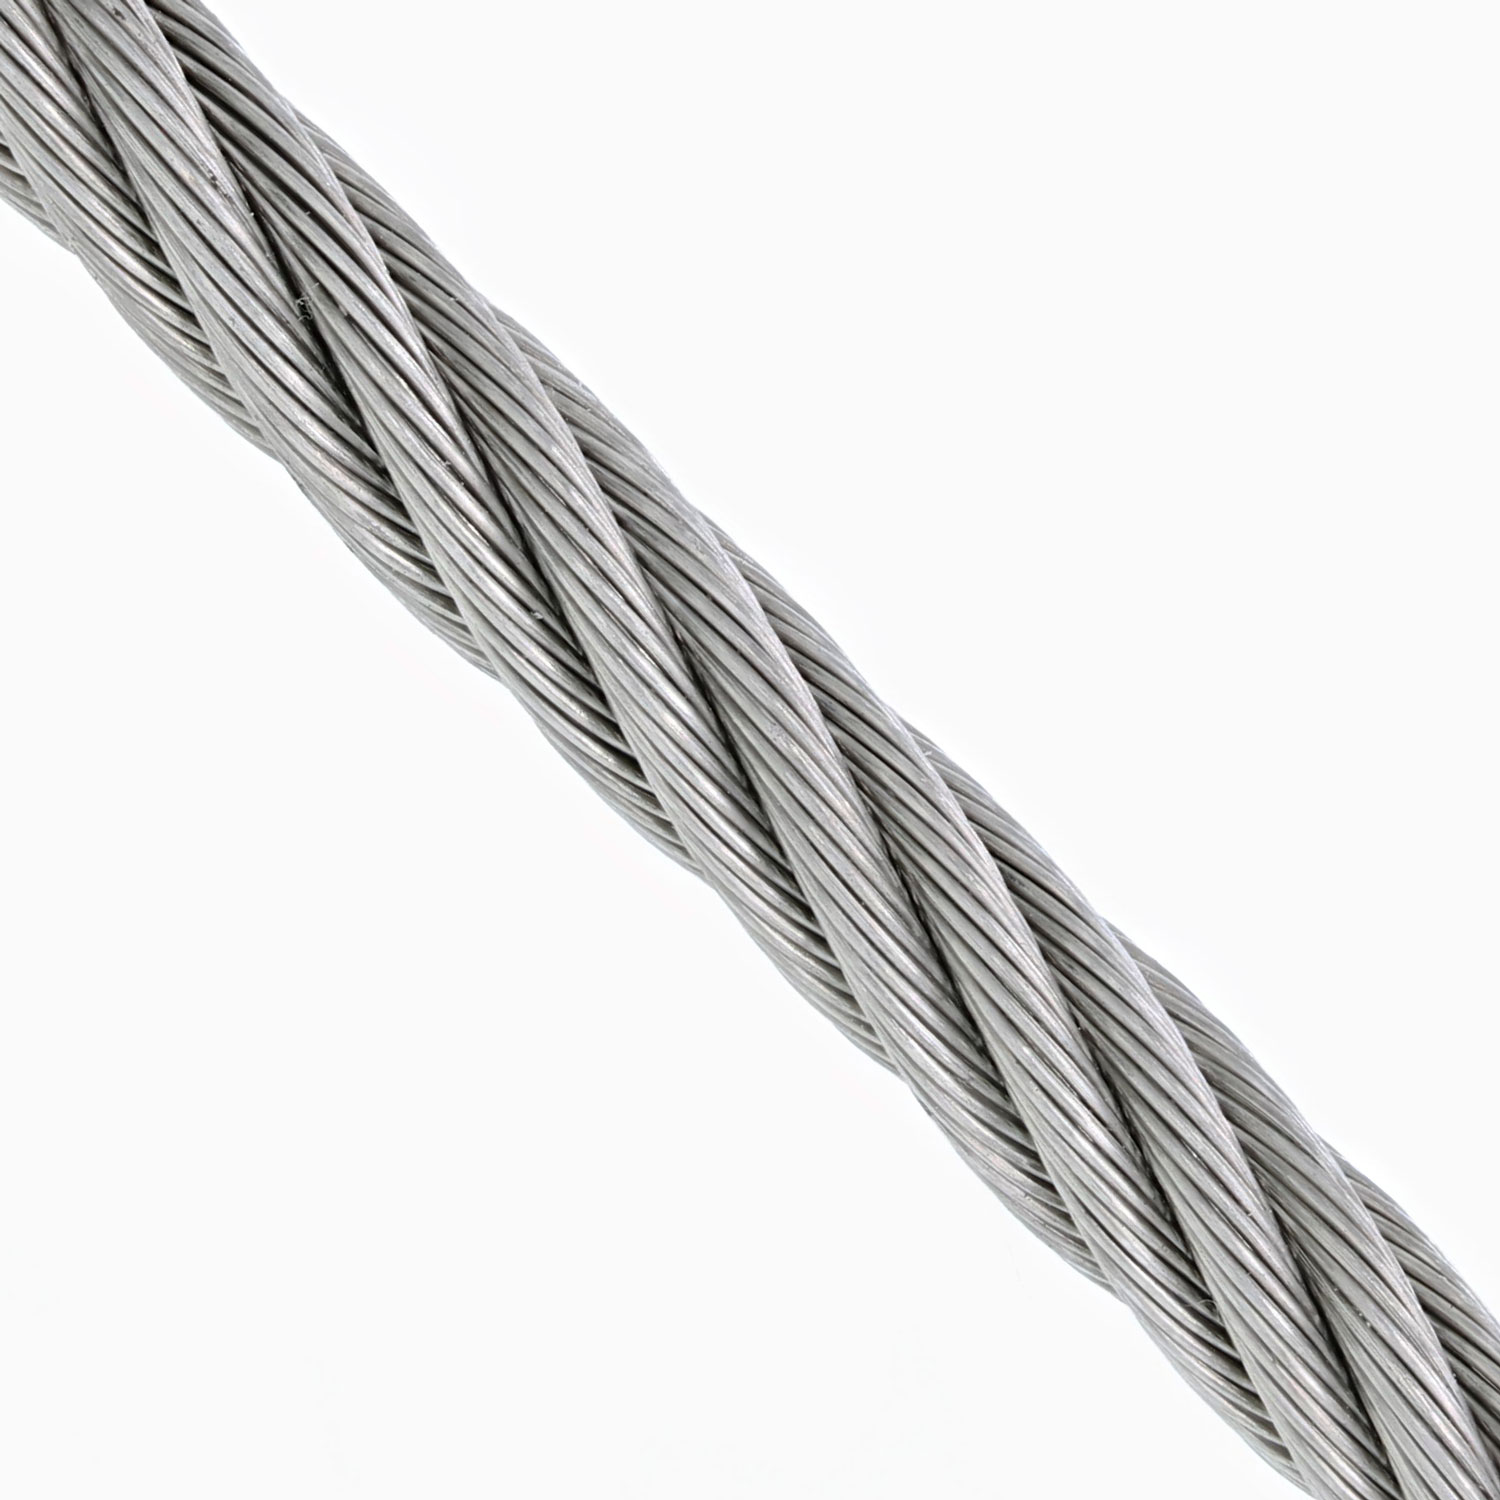 Image result for steel wire rope